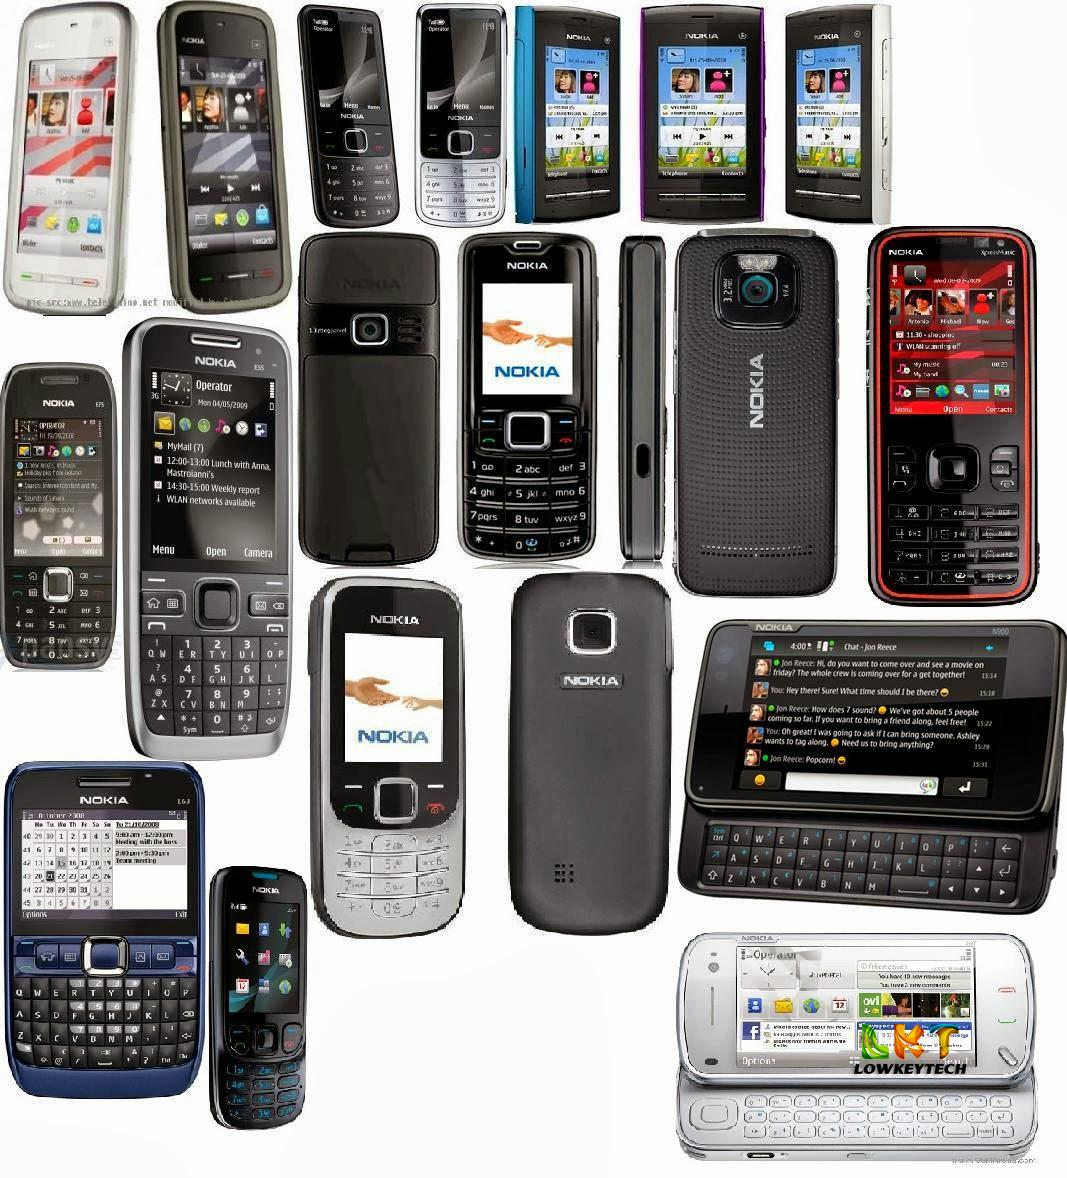 Though Different Phone Dealers Prices Varies But The Aim Of This Article Is To Let You Have An Idea How Much A Nokia Cost In Market